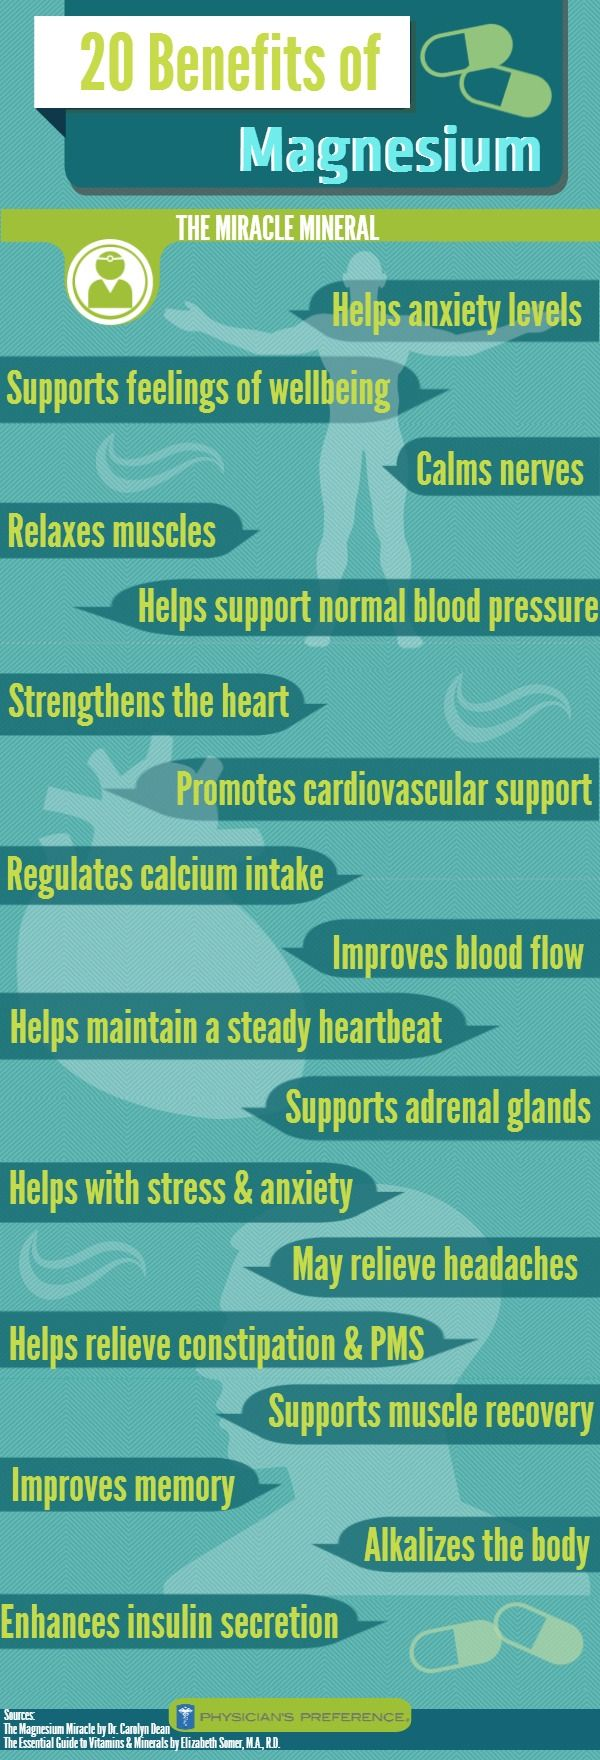 Magnesium benefits - top 20